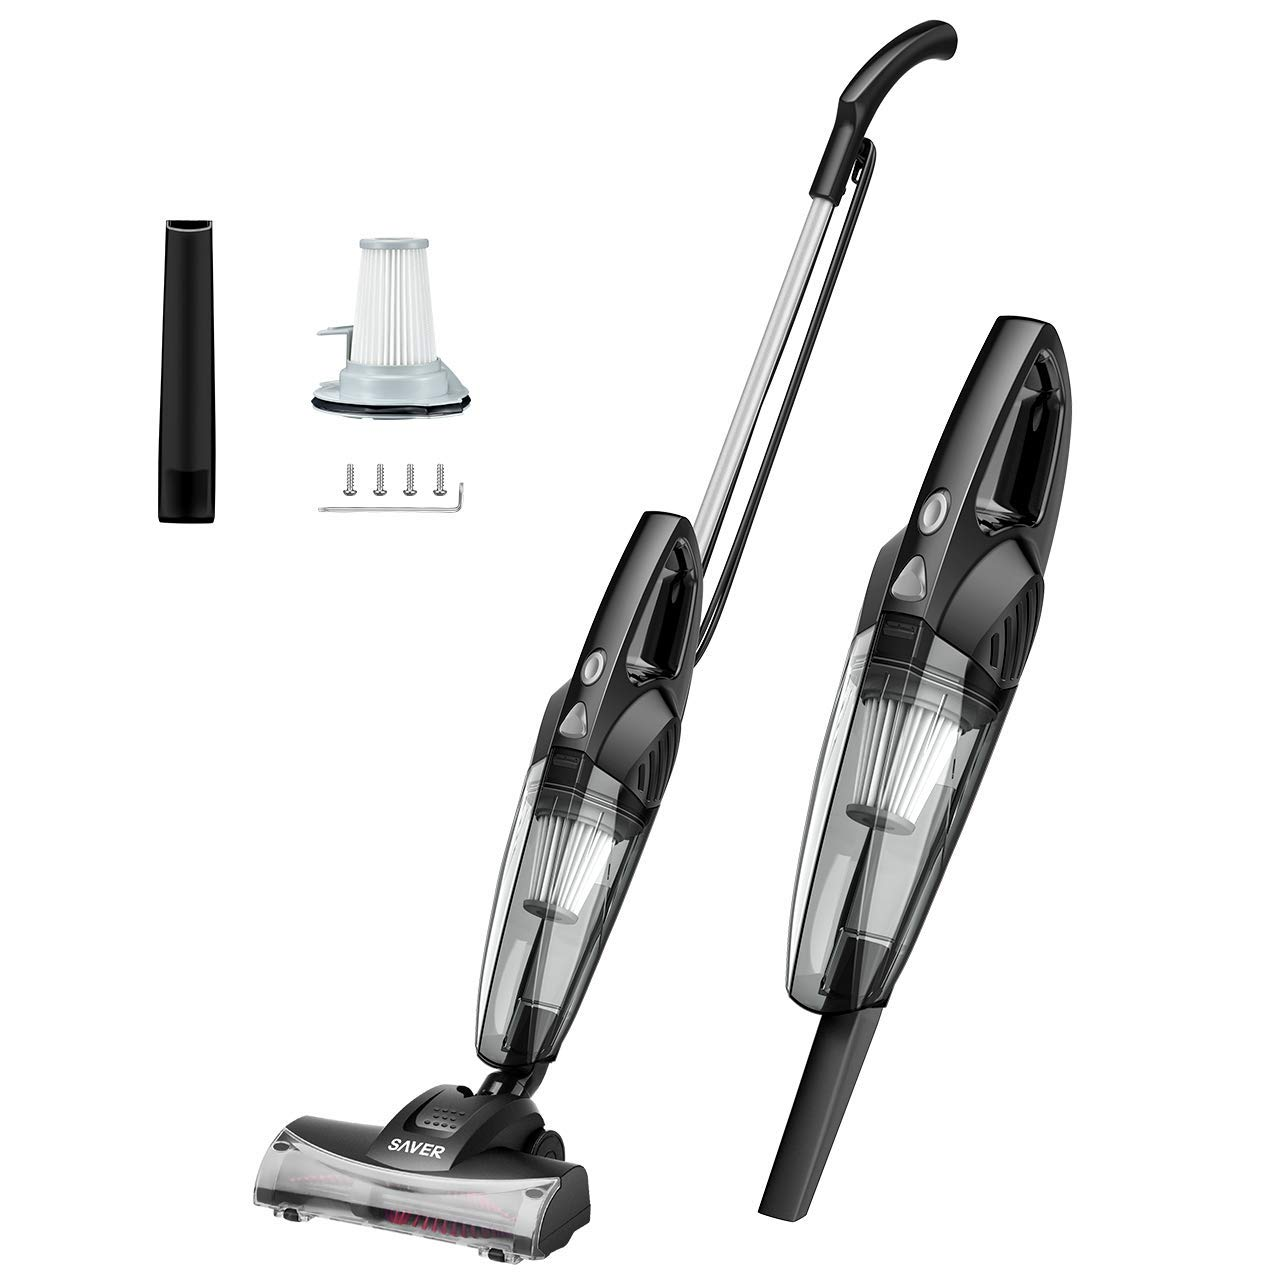 Yantop 2-in-1 Stick & Handheld Vacuum Cleaner, 15kPa Powerful Suction Hand Vacuum Lightweight Corded Pet Hair Eraser with Wheeled Turbo Brush Head for Carpet Hard Floor